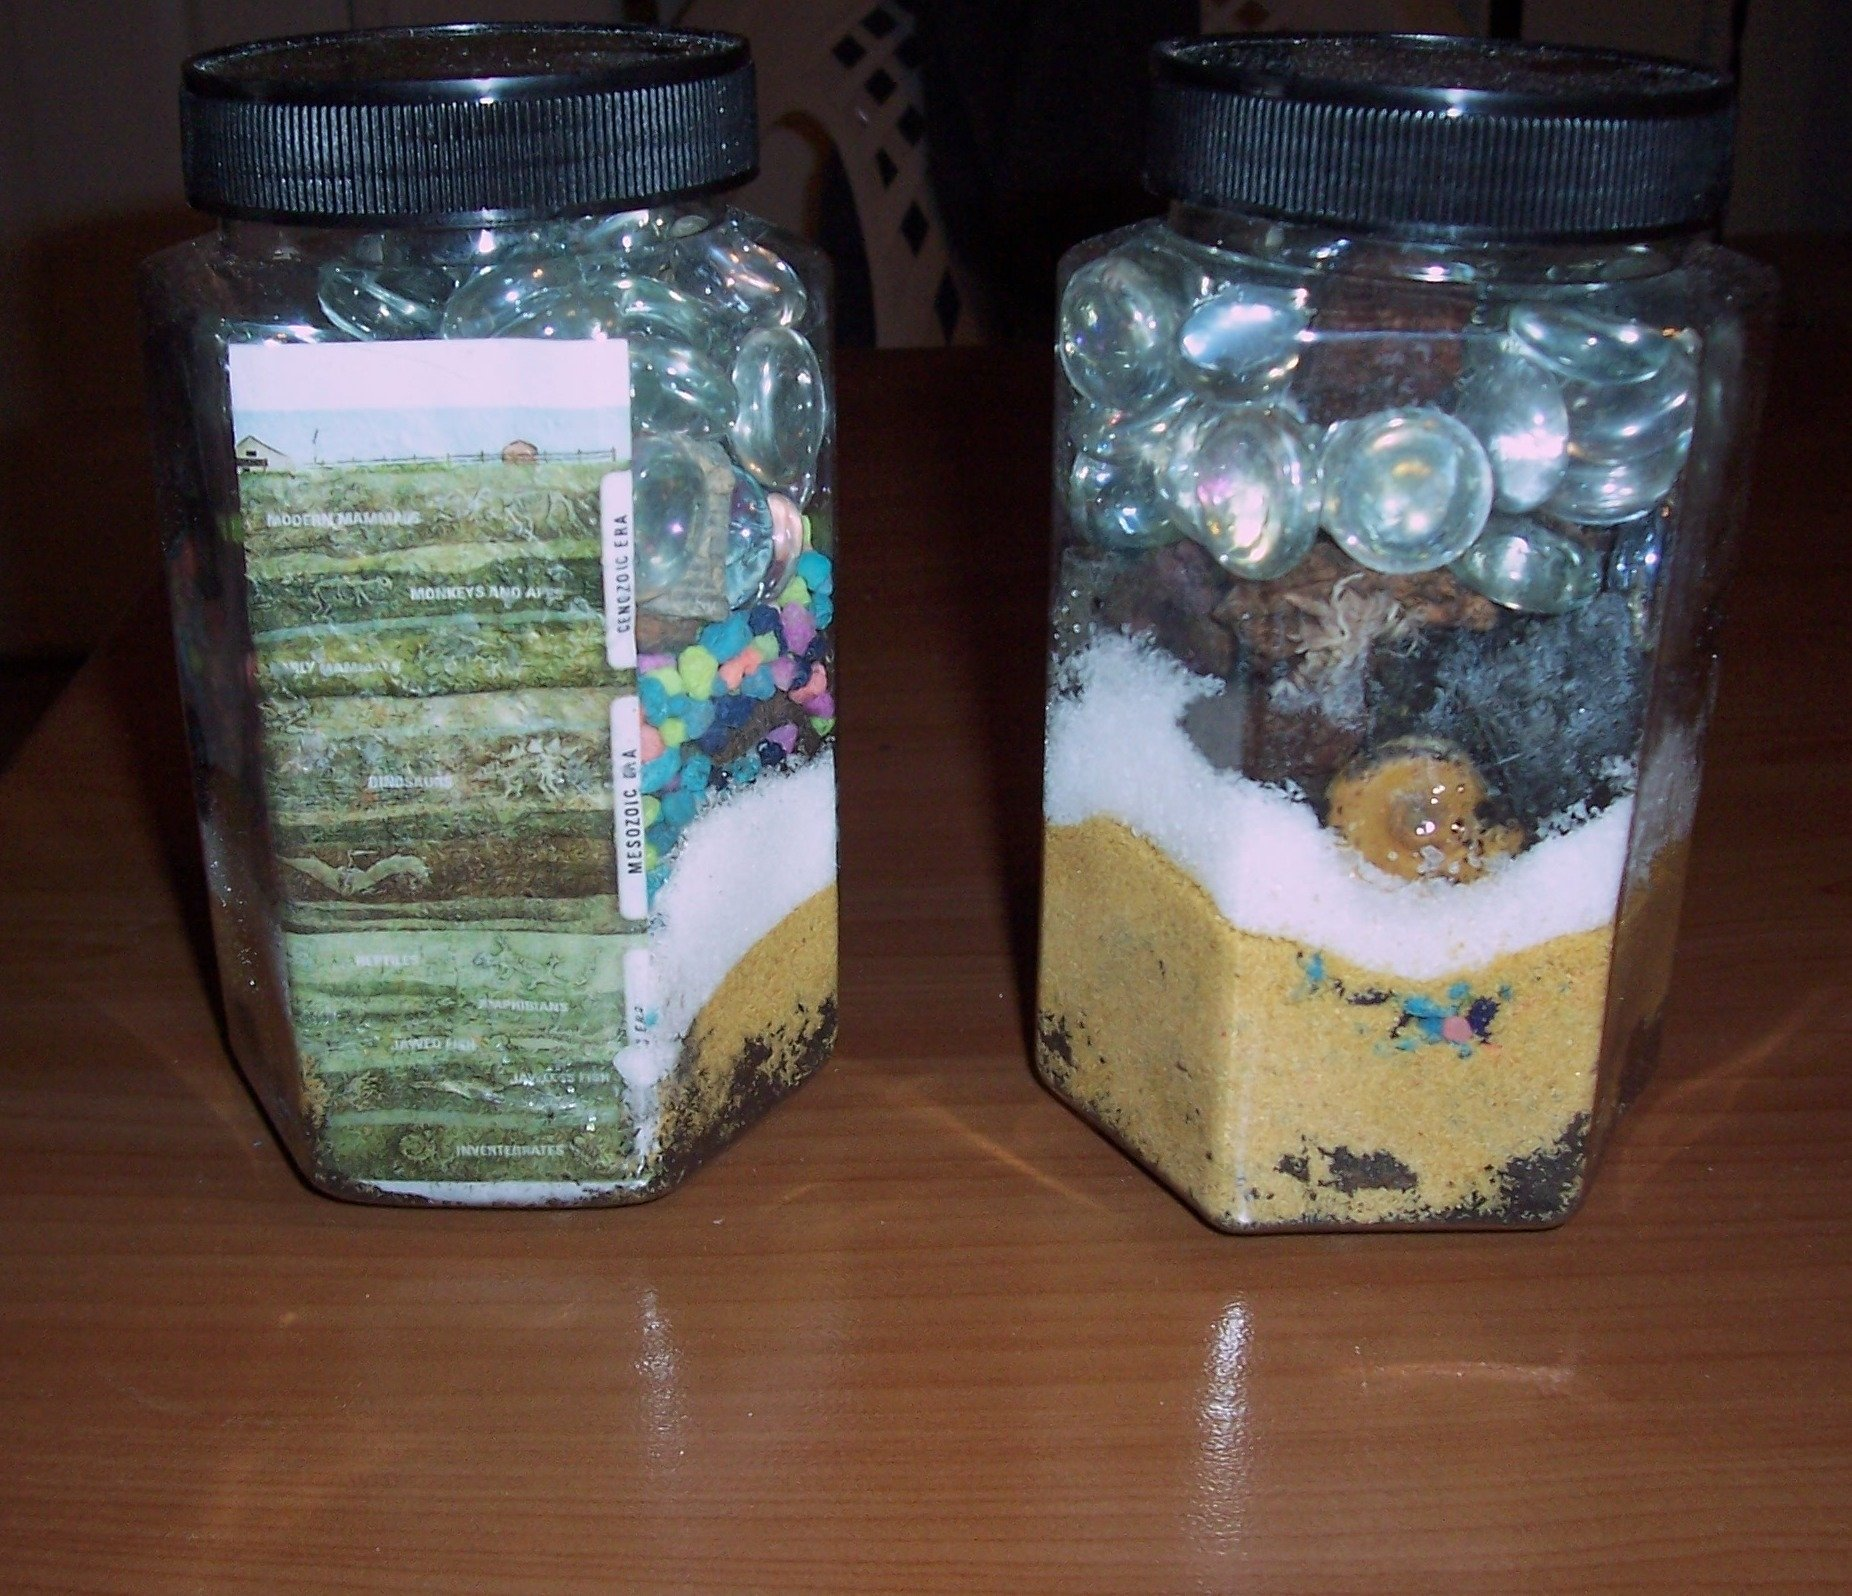 10 Famous Layers Of The Earth Project Ideas layers of the earth educational innovations blog